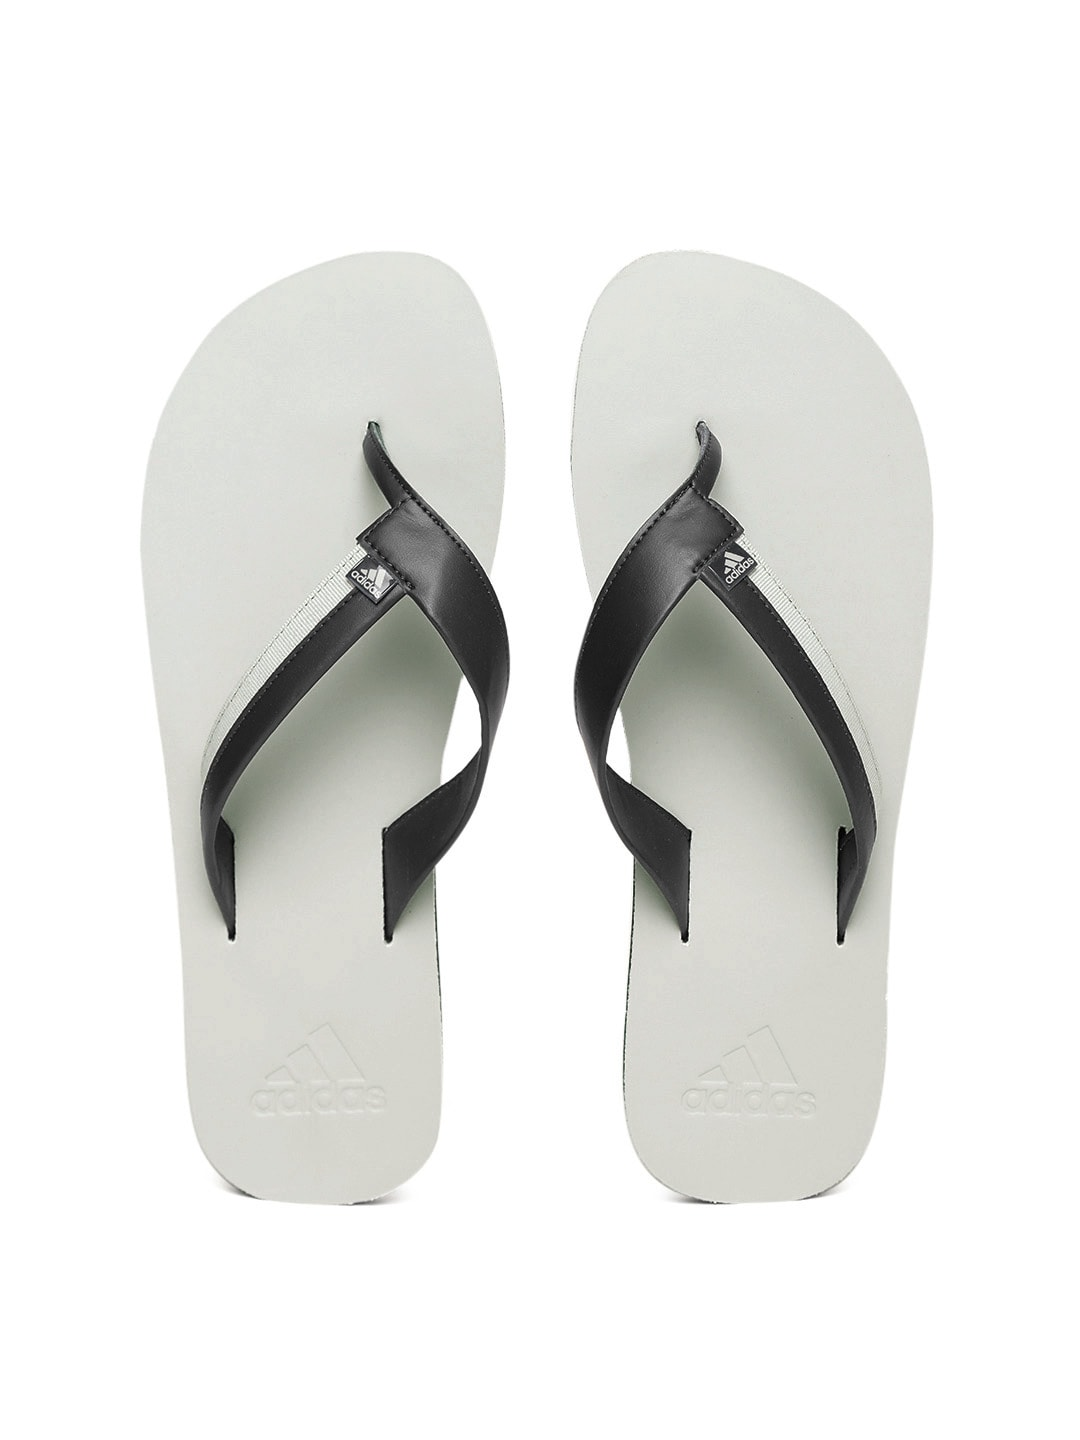 f1729774c Flip Flops Adidas Sandals - Buy Flip Flops Adidas Sandals online in India